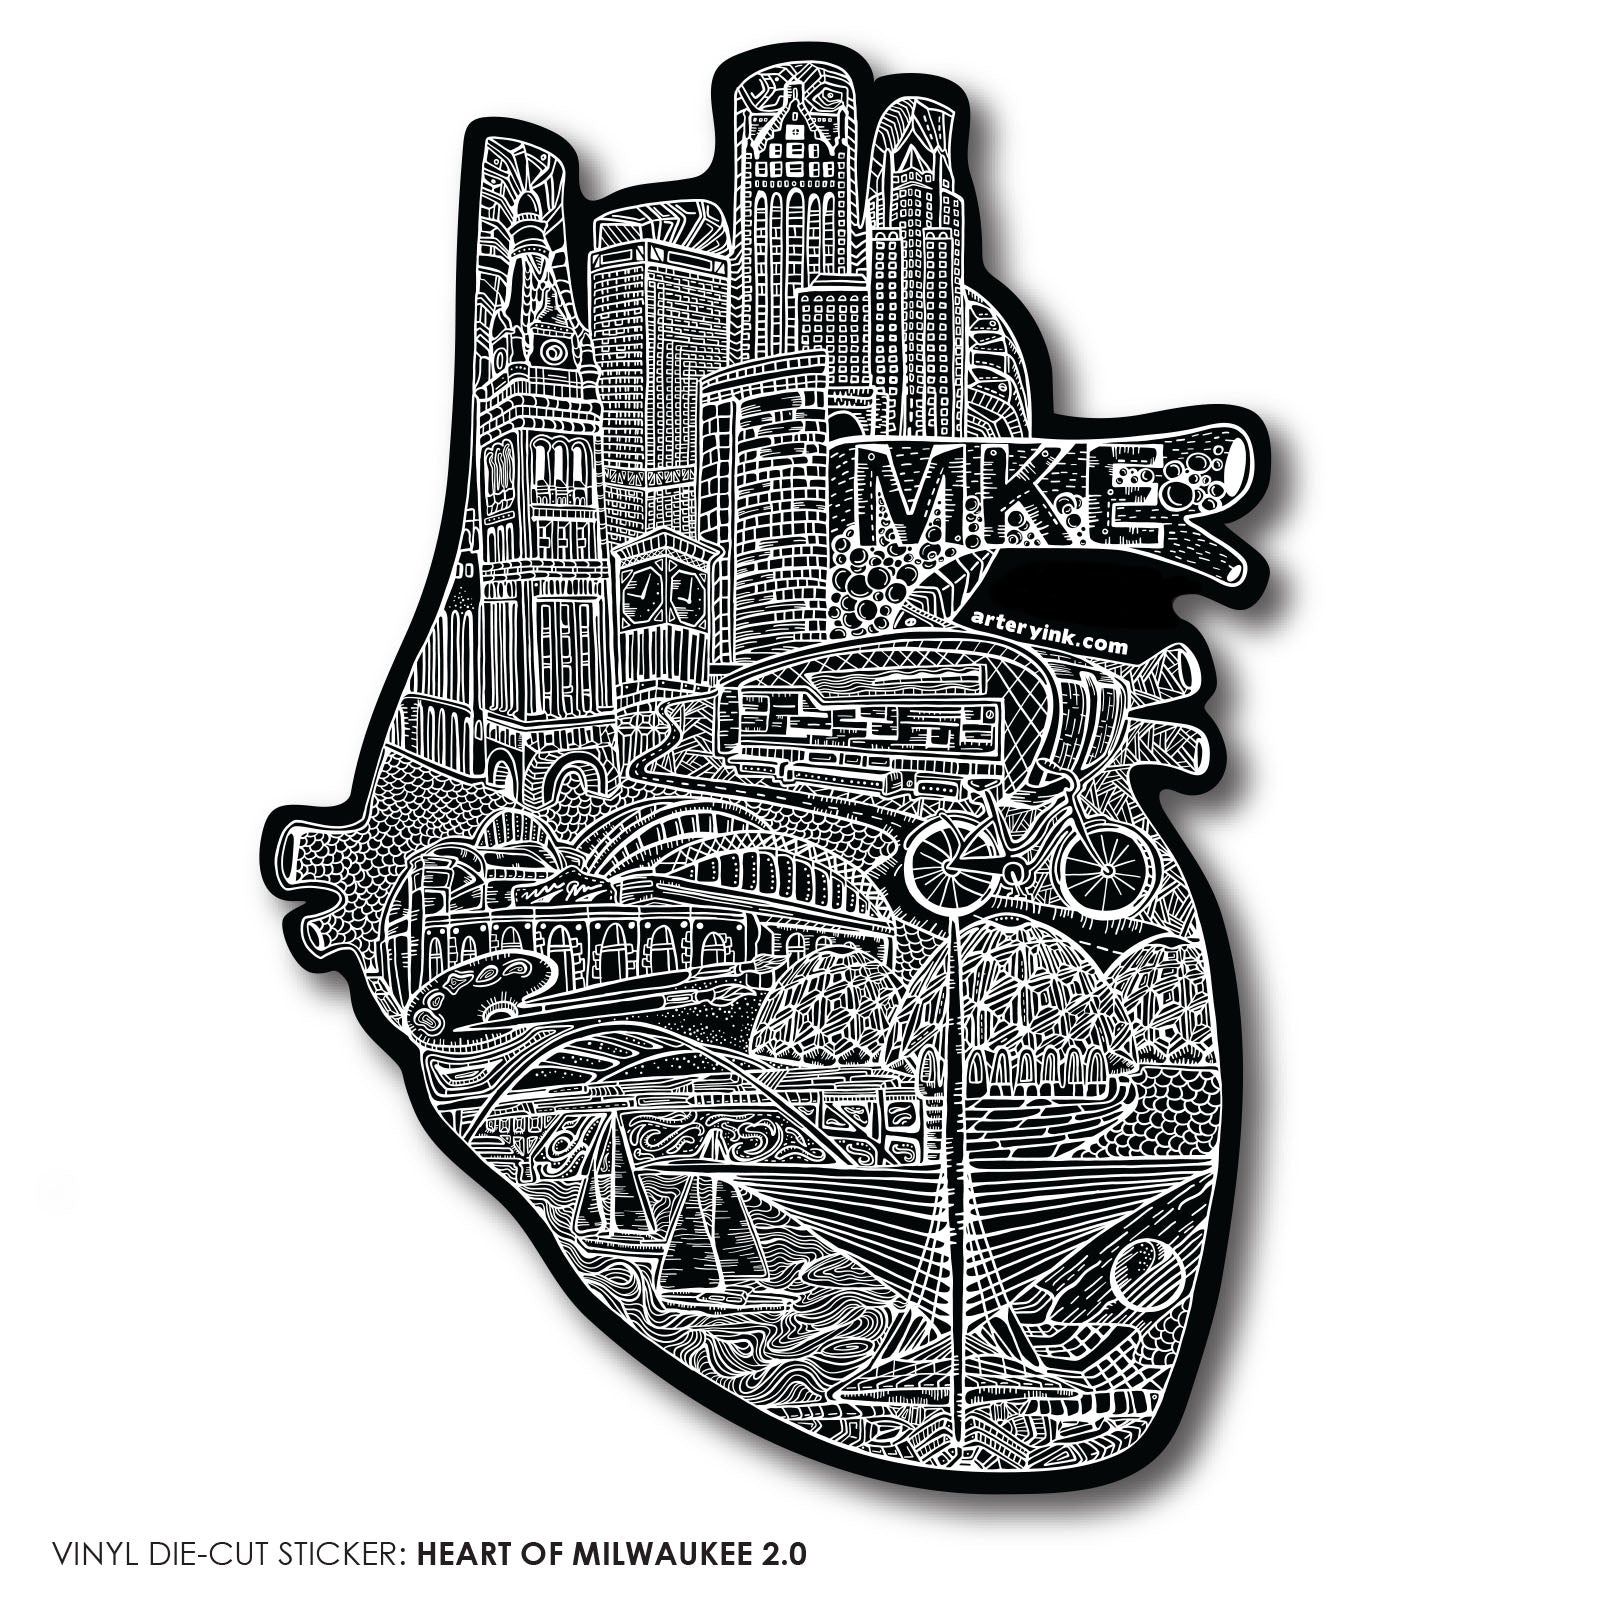 Heart of Milwaukee 2.0 Sticker